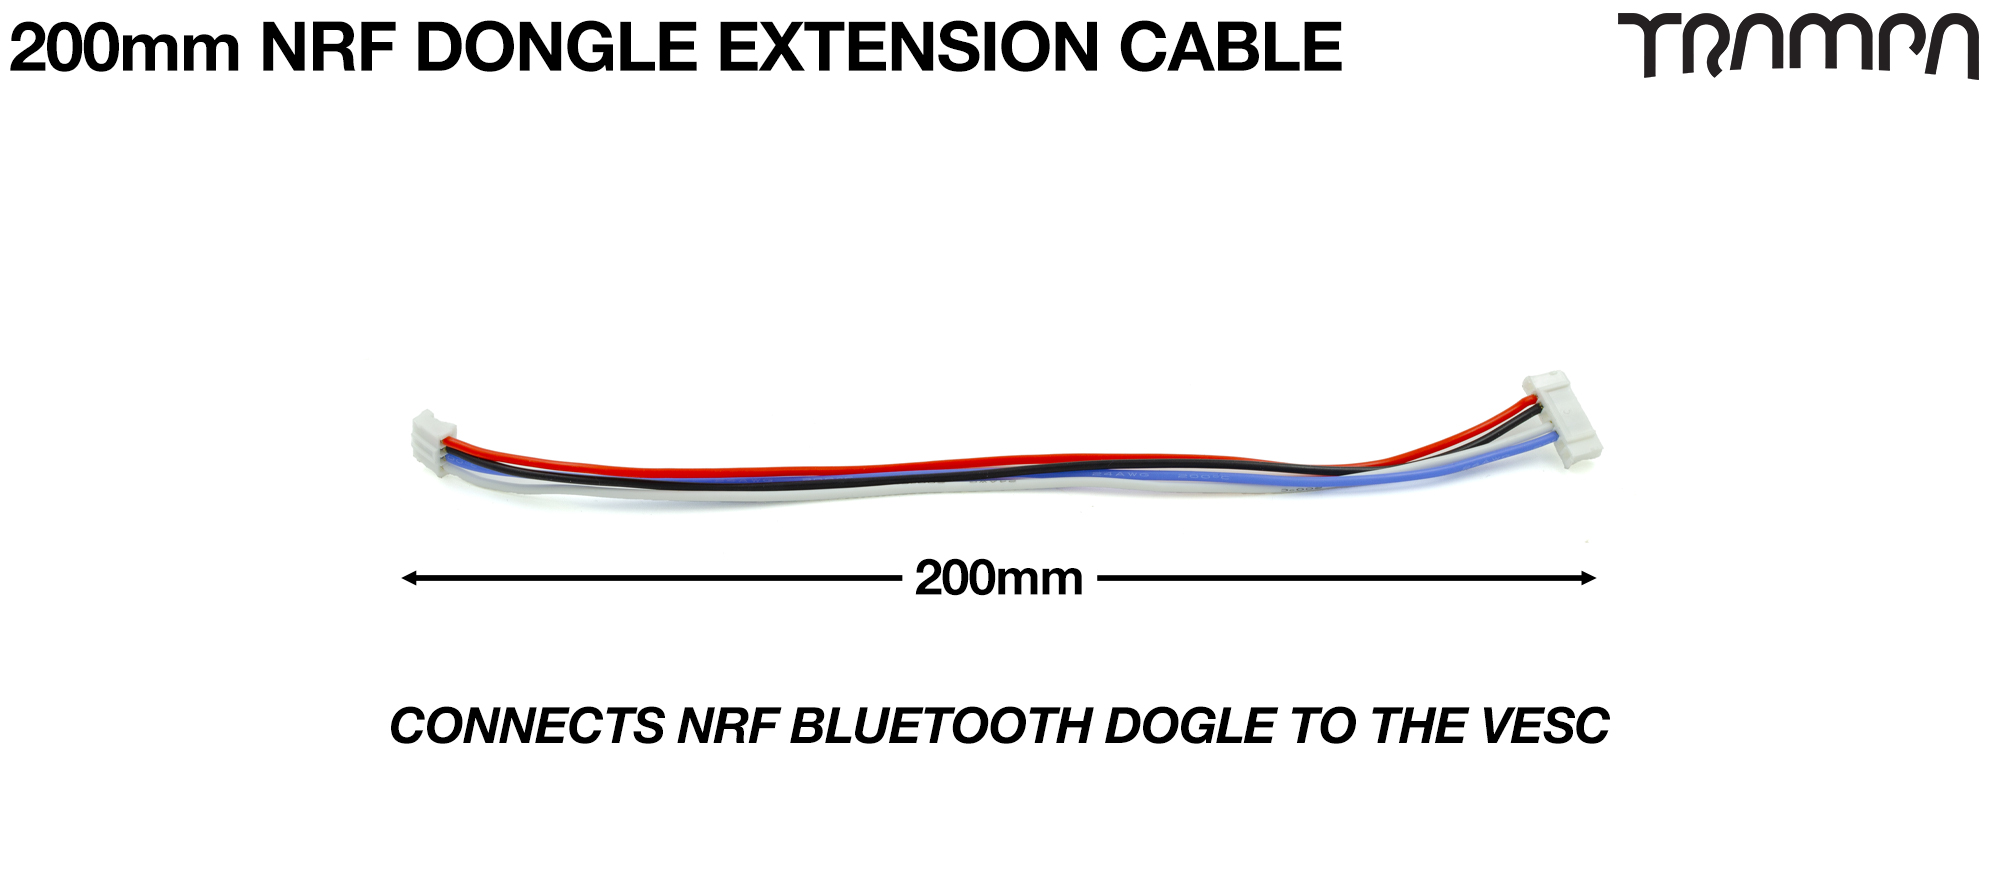 200mm of VESC Connect Dongle Cable per Dongle